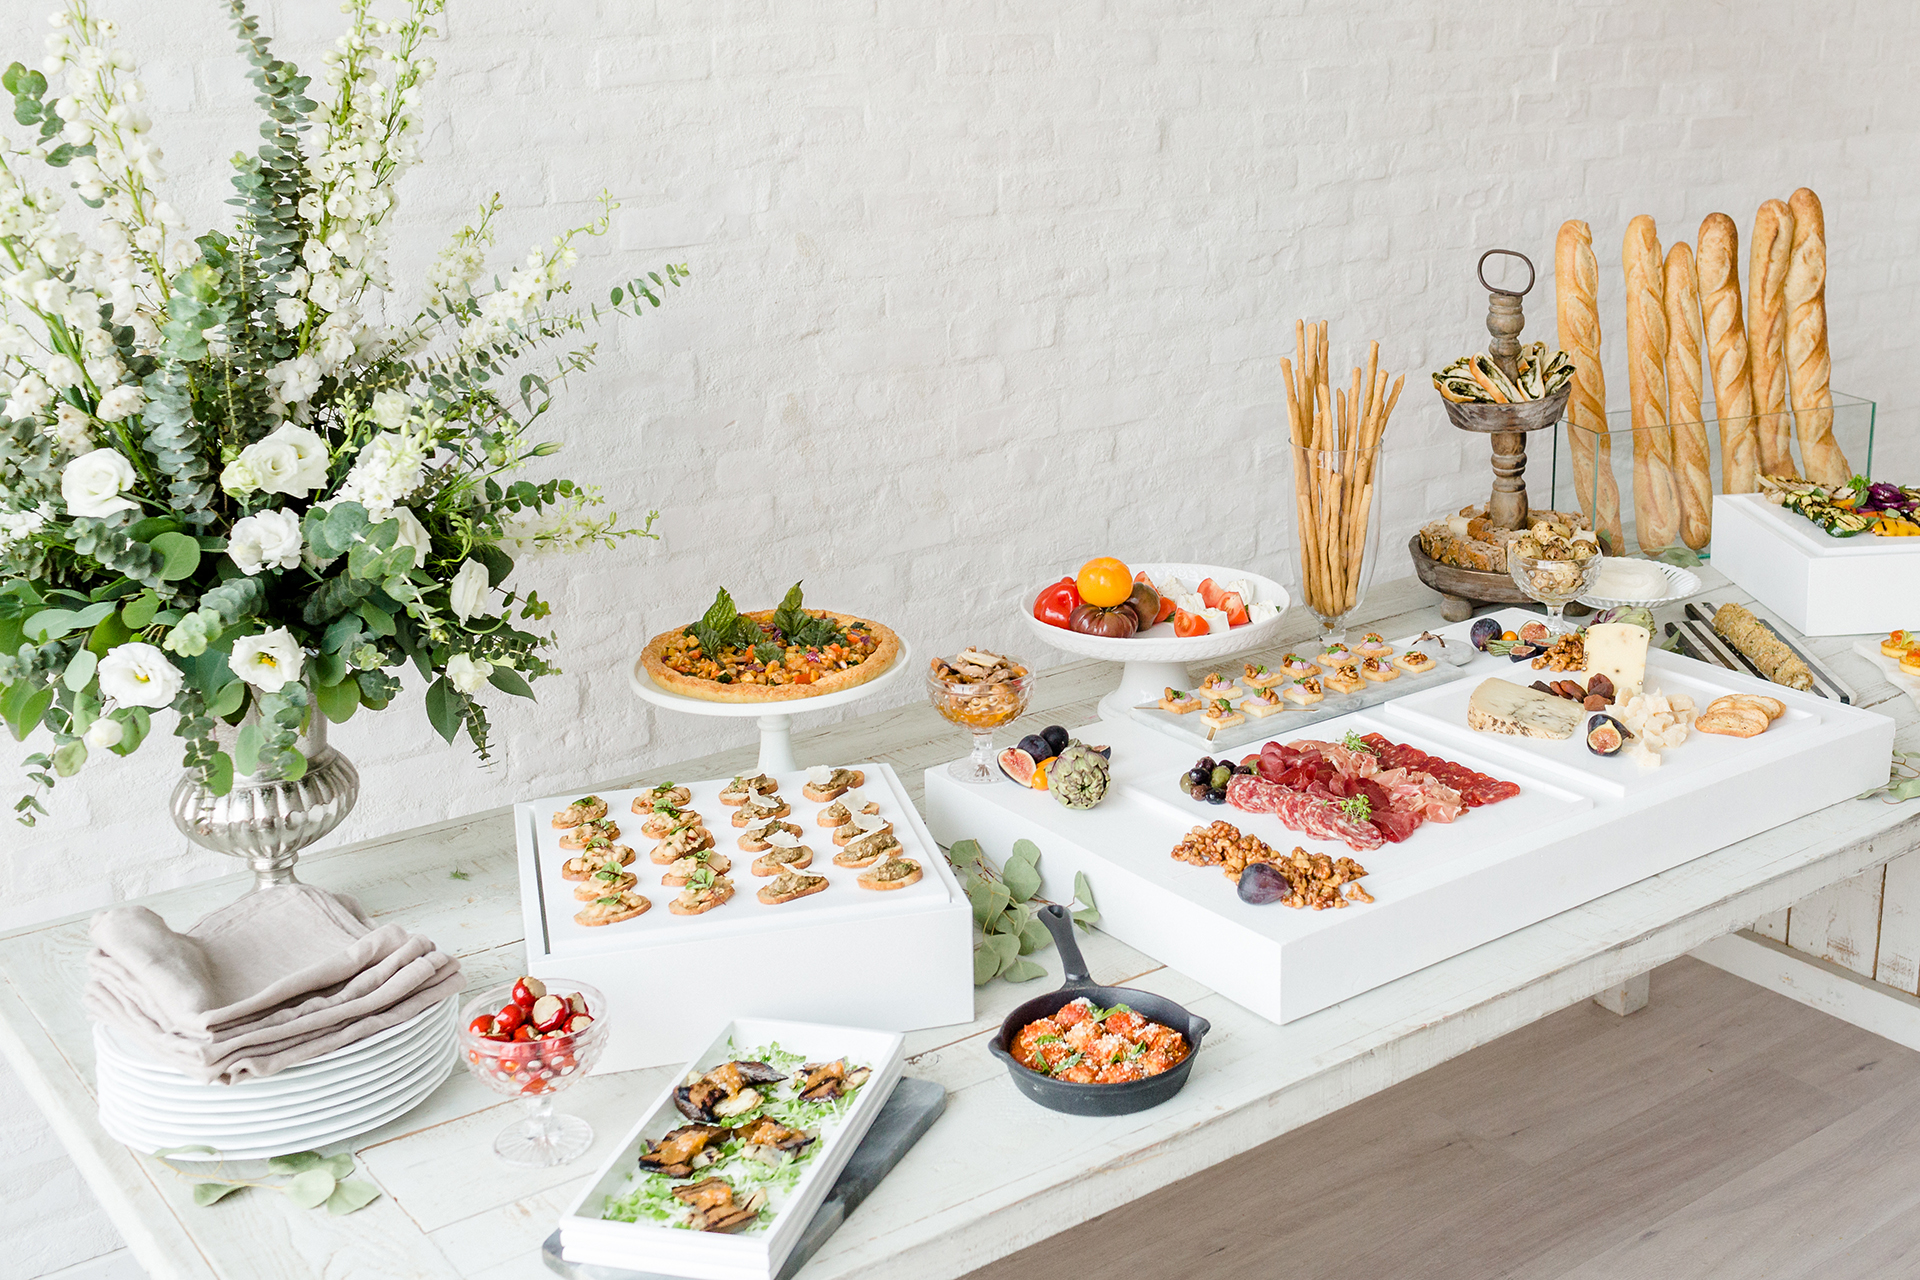 A table with food from an event catered by Ristorante Beatrice.